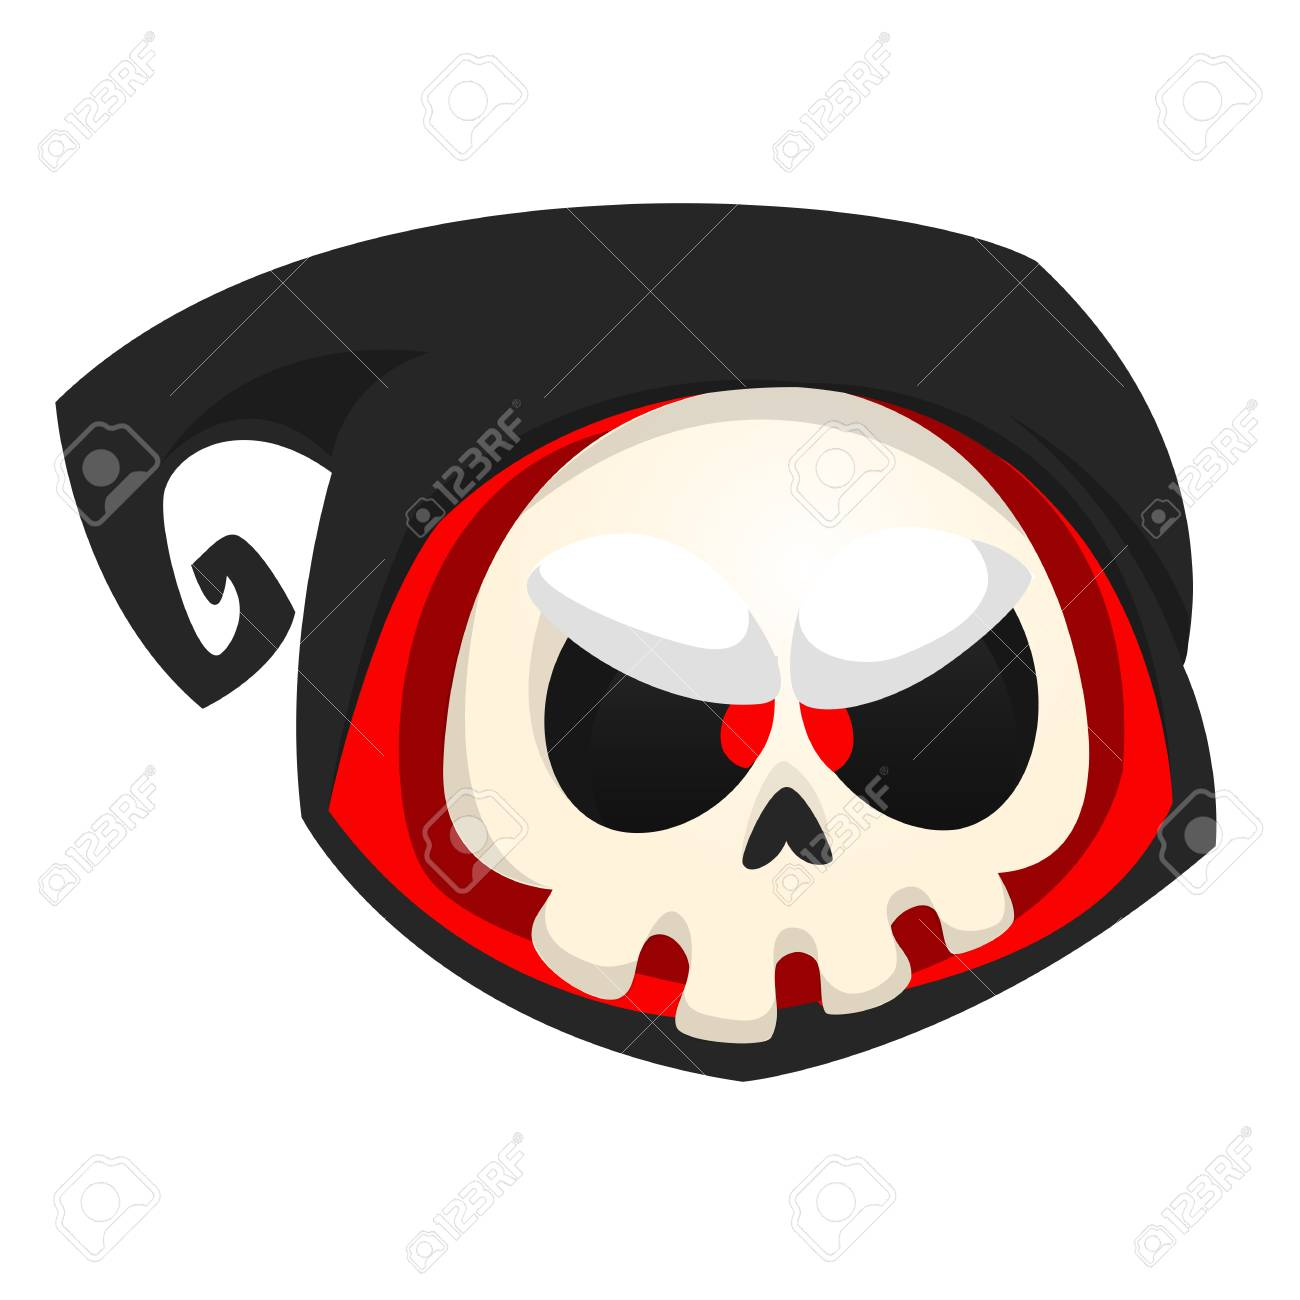 halloween vector icon of death skull mascot isolated on white background